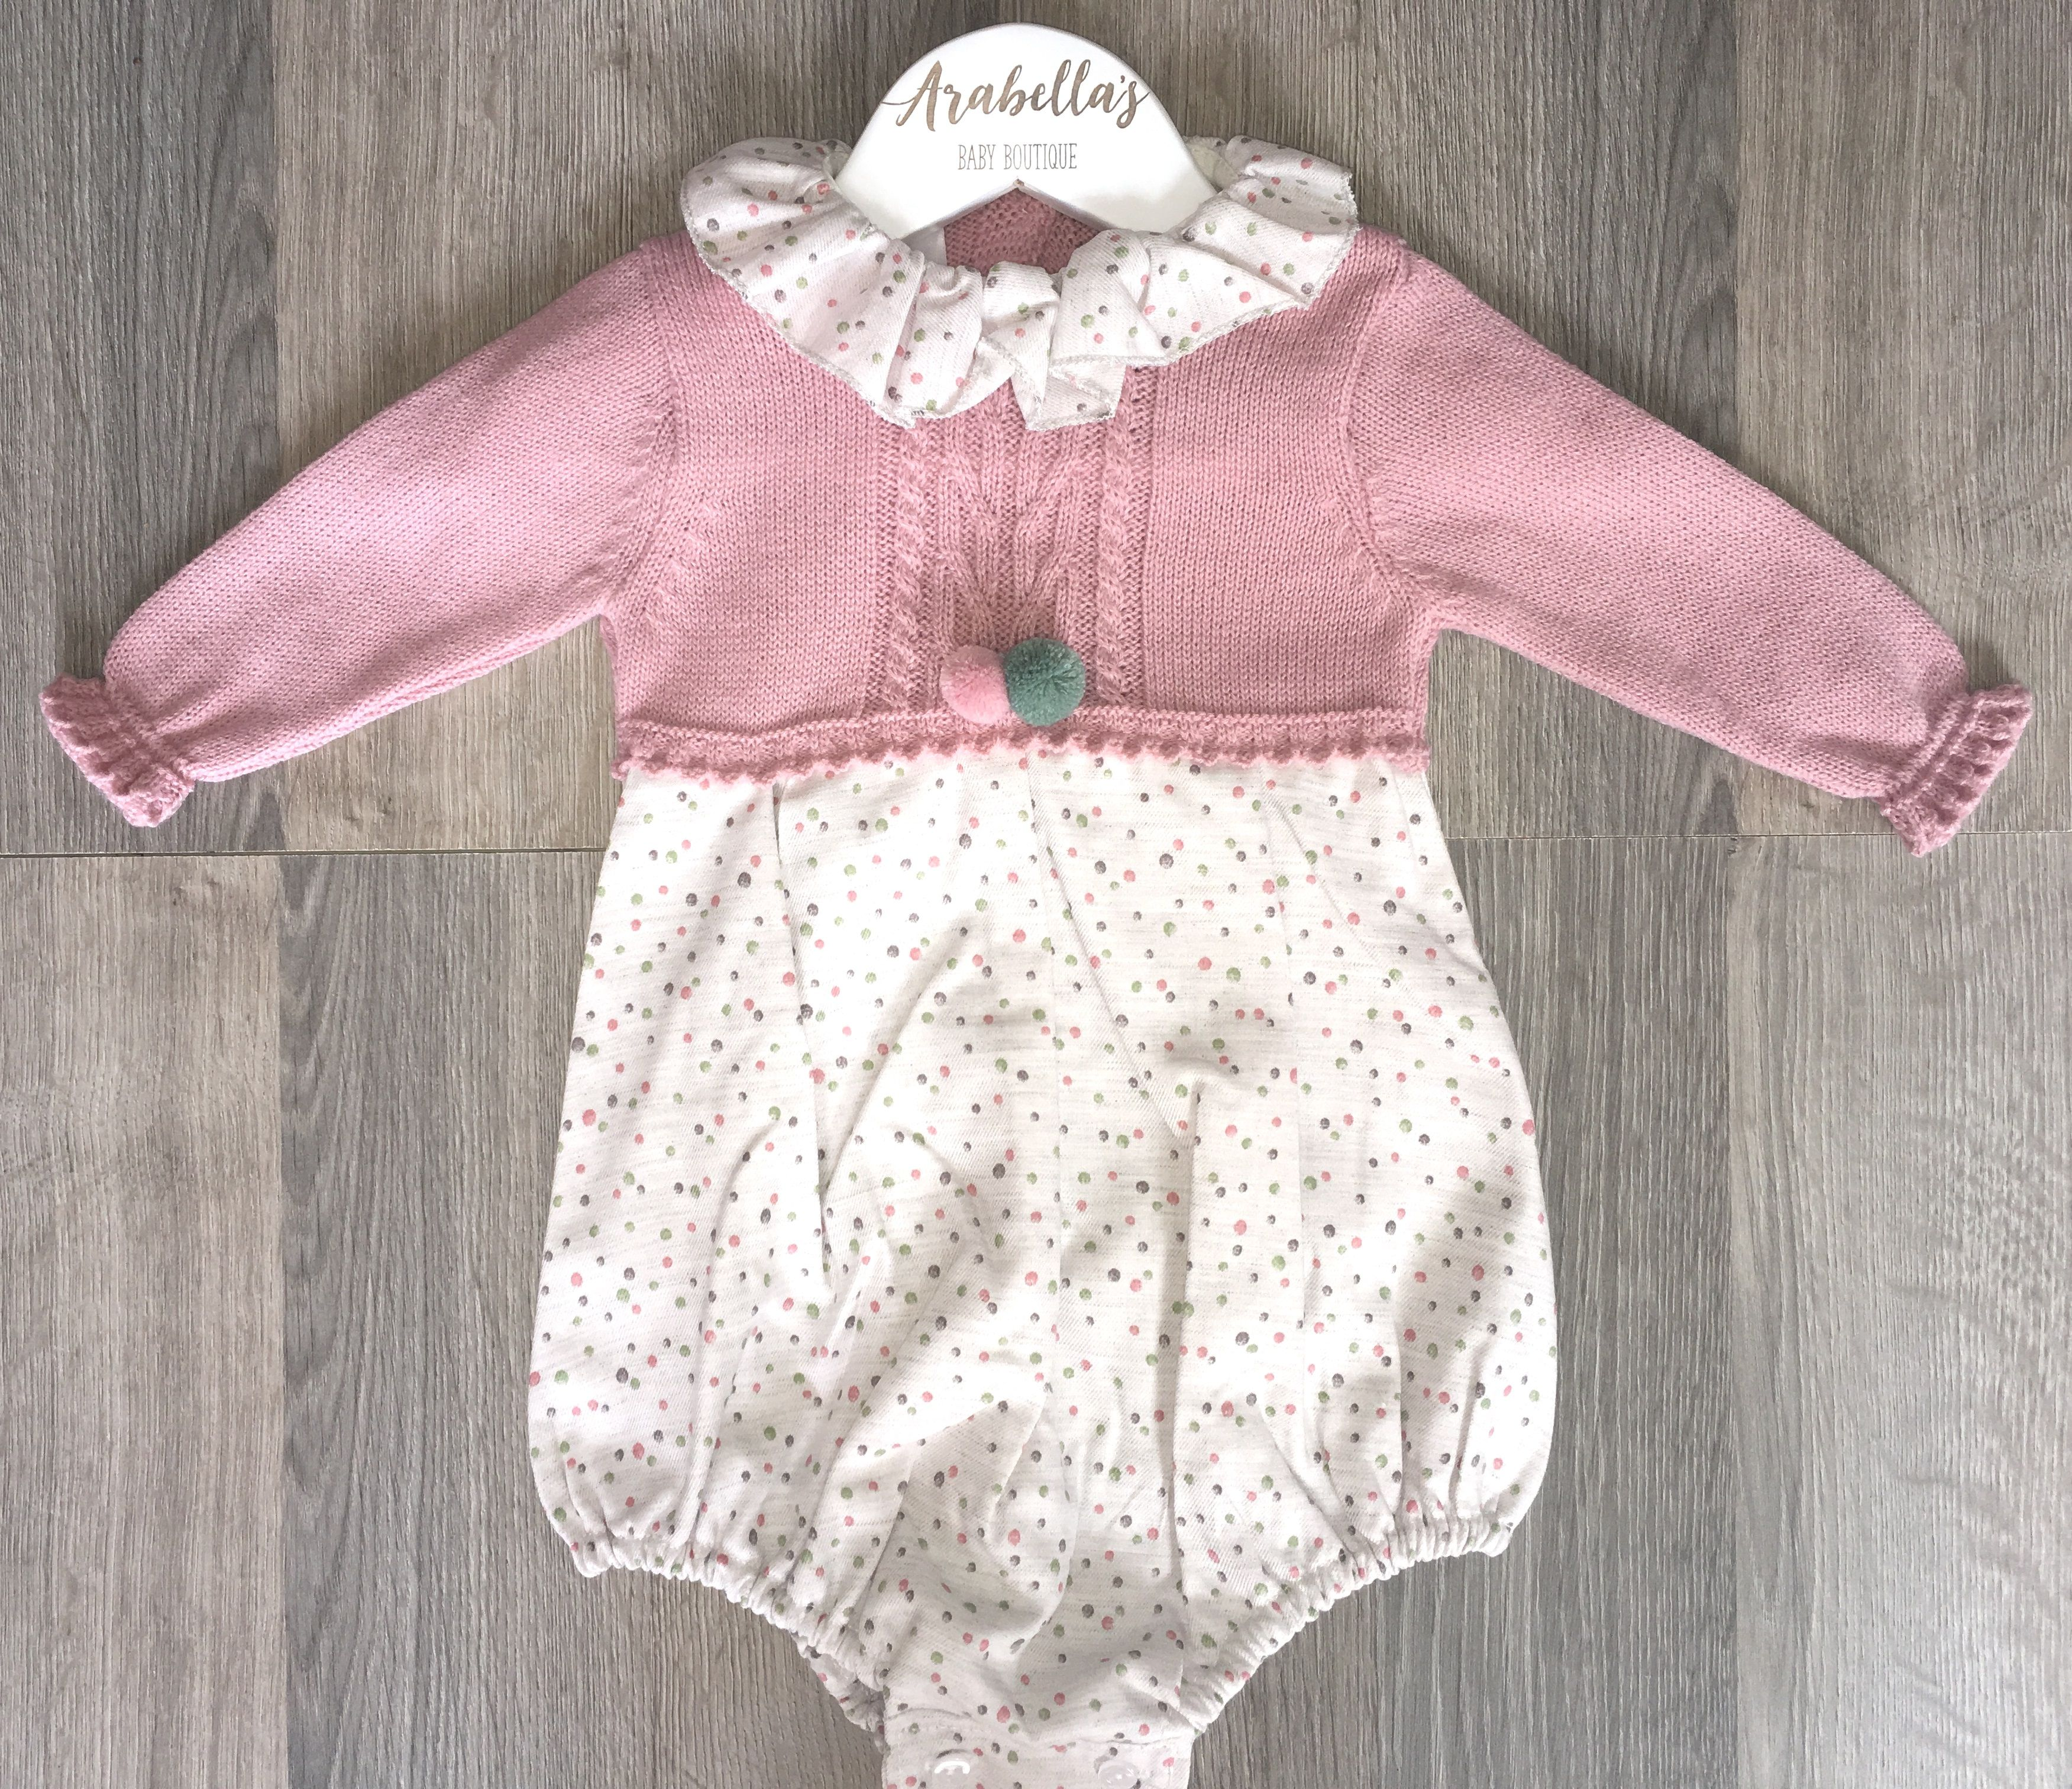 6701a587056 Spanish baby girl romper with pompoms and frill neck. Soft dusky pink  knitted overlay. Spanish baby girls Arabellas Baby Boutique